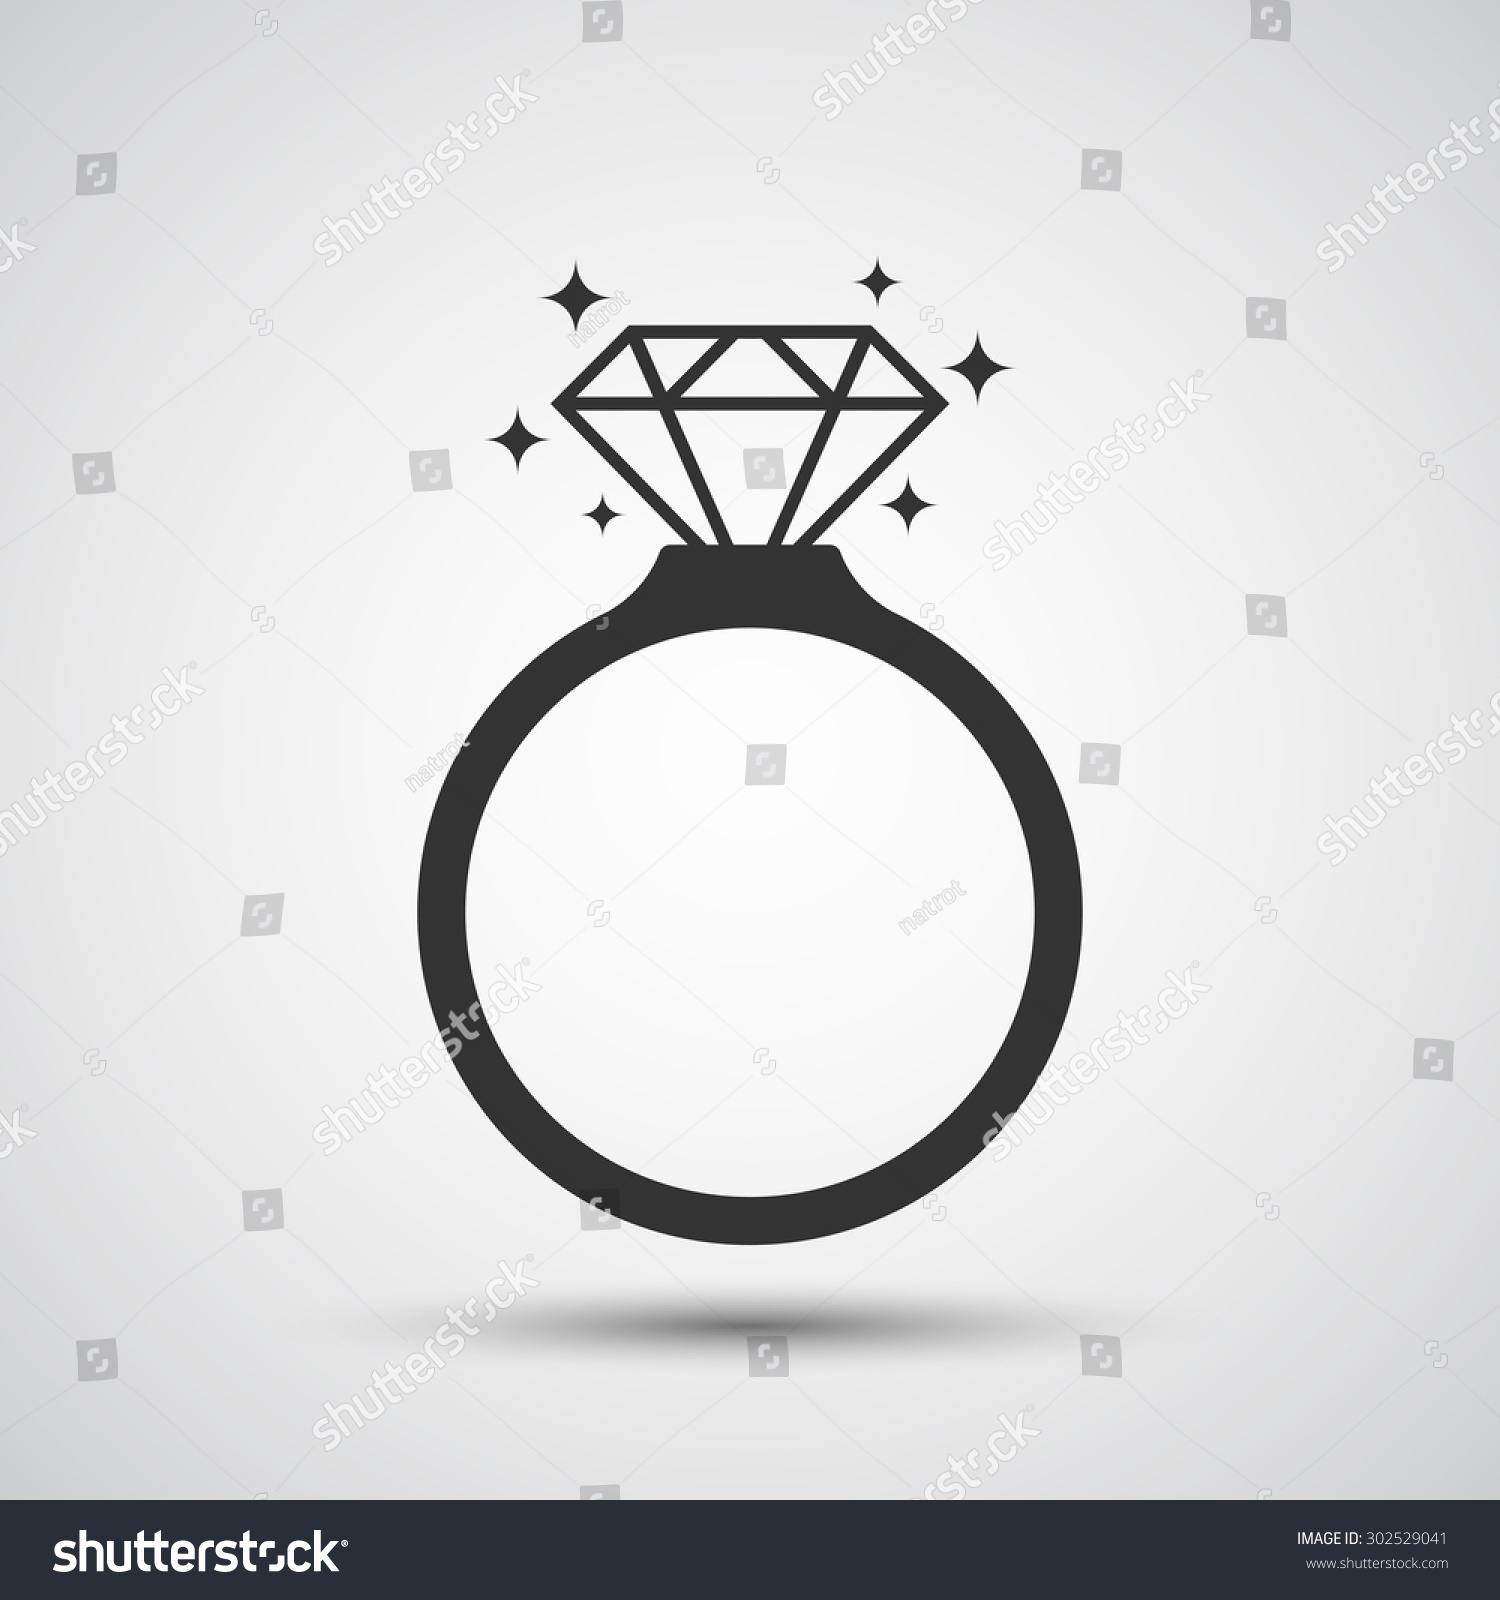 diamond ring vector icon - photo #19